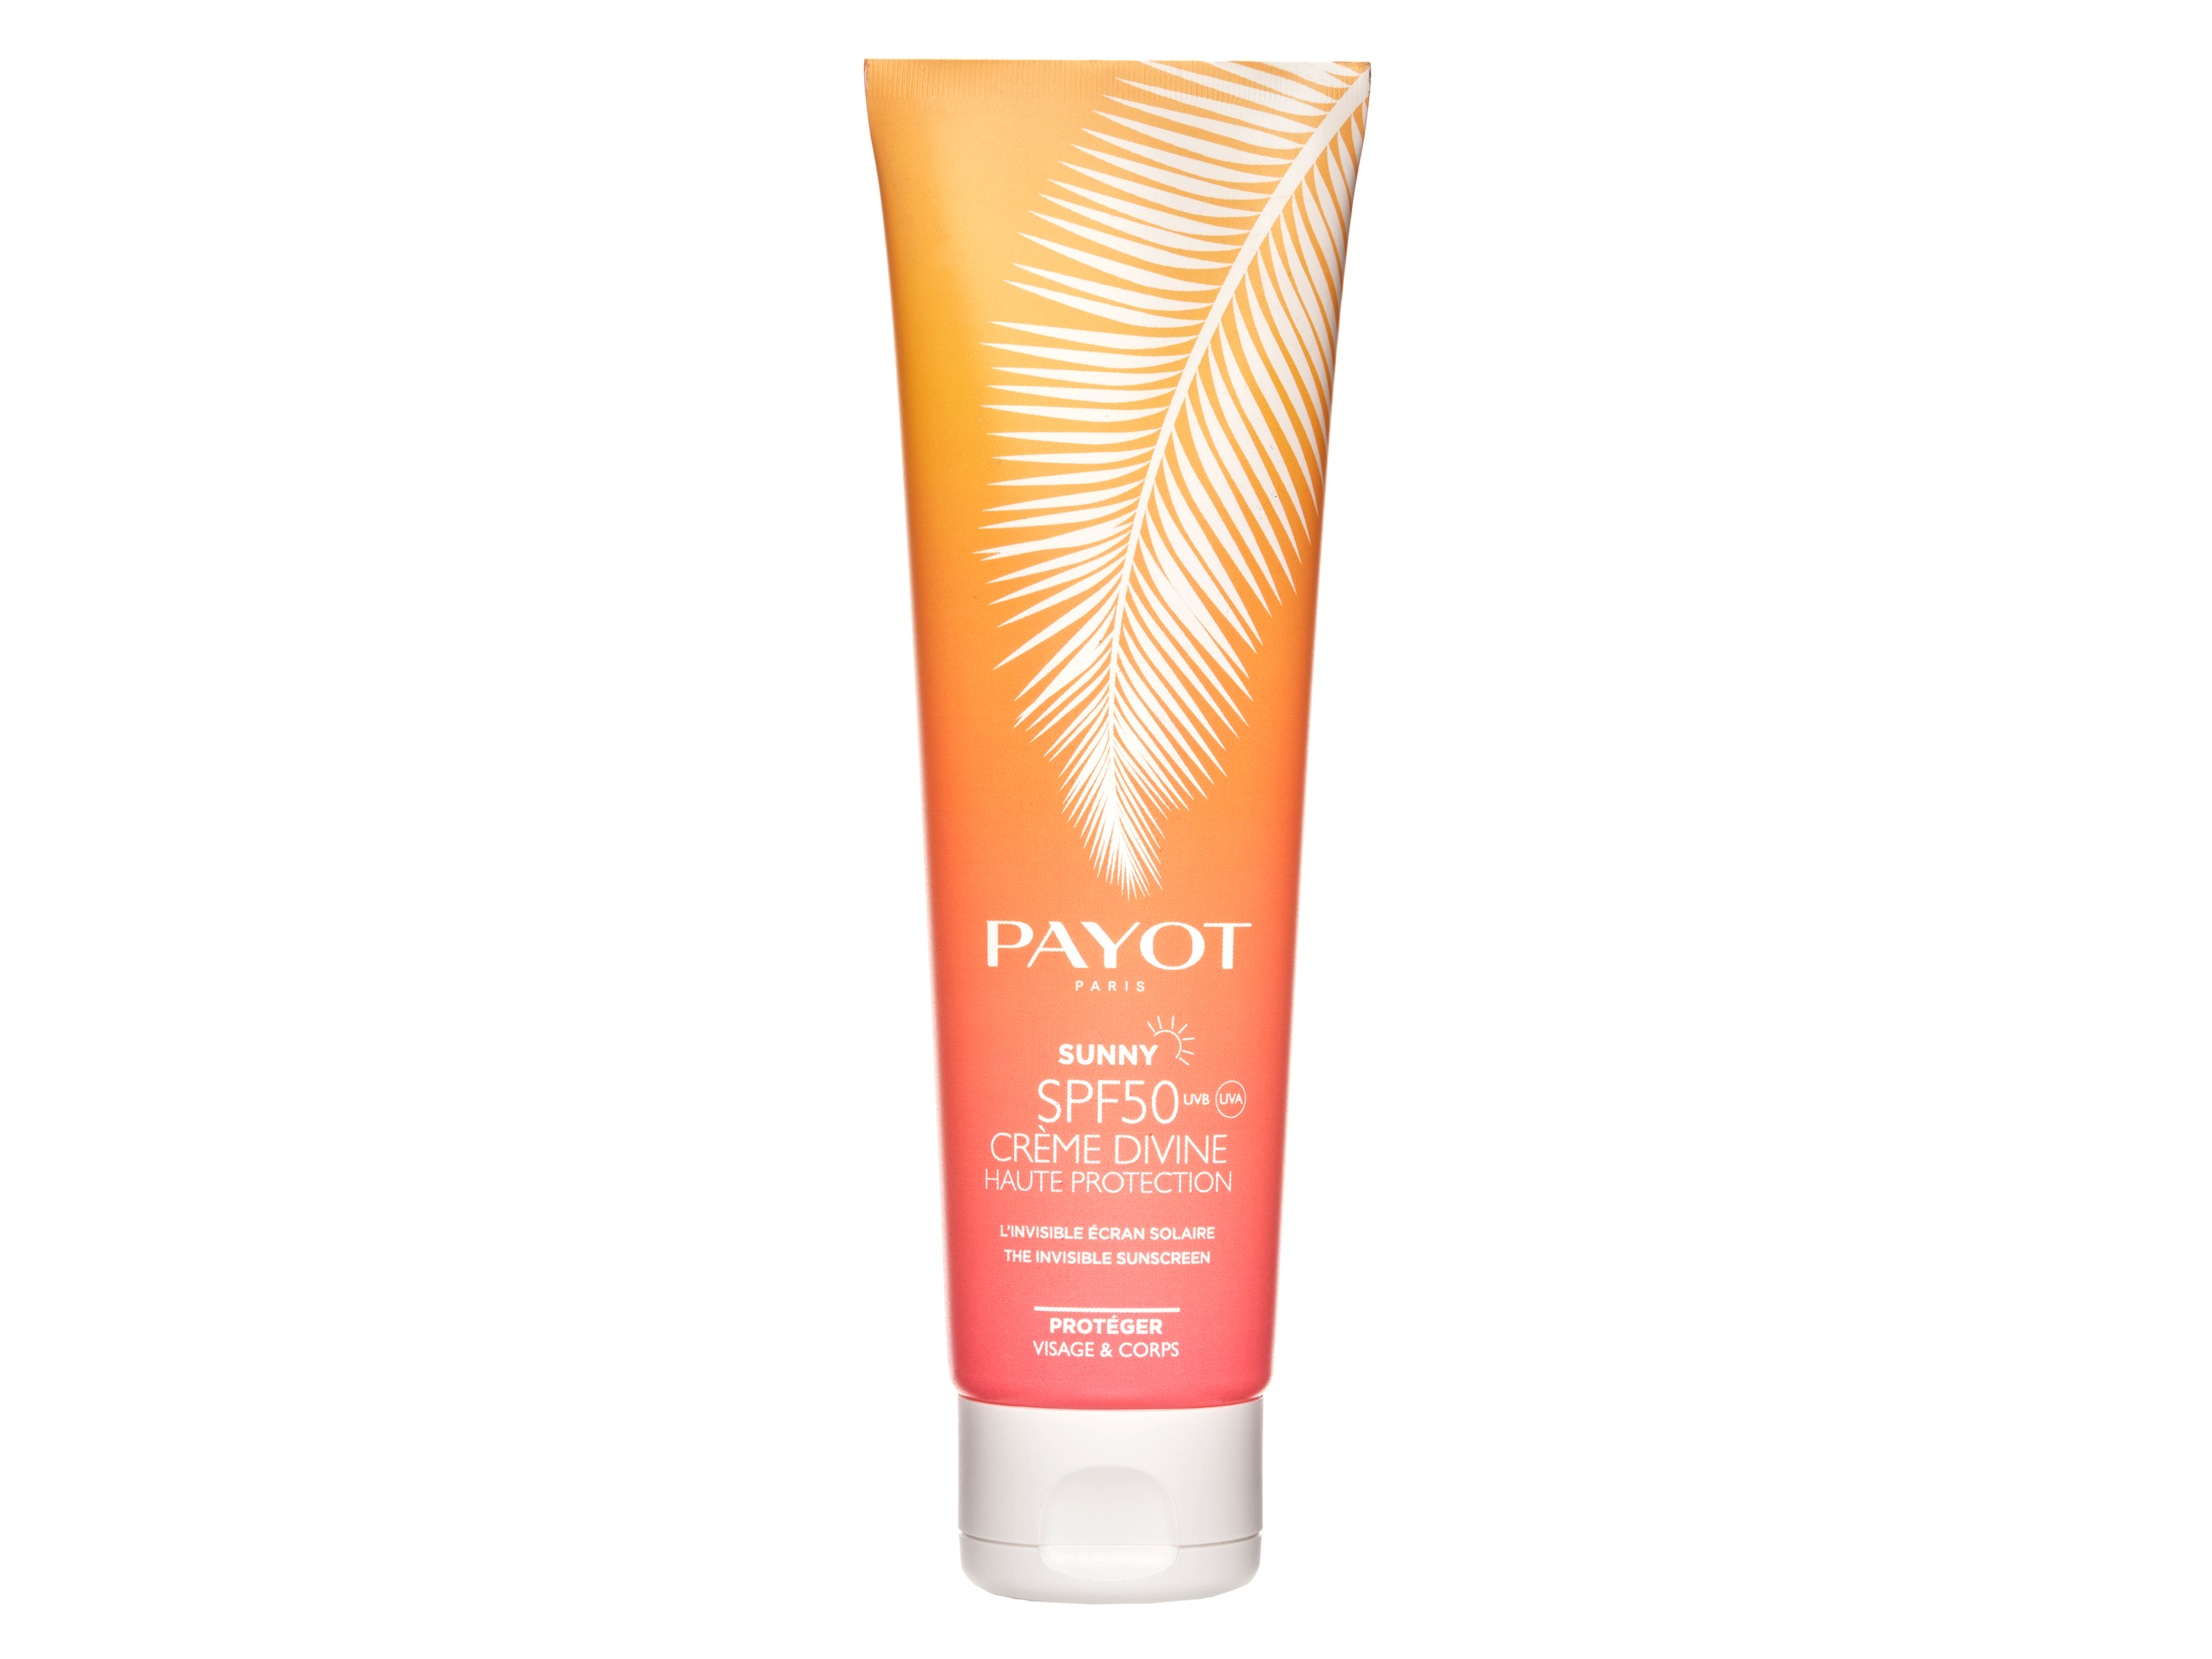 Payot Sunny Crème Divine Face and Body, SPF 50, 150 ml